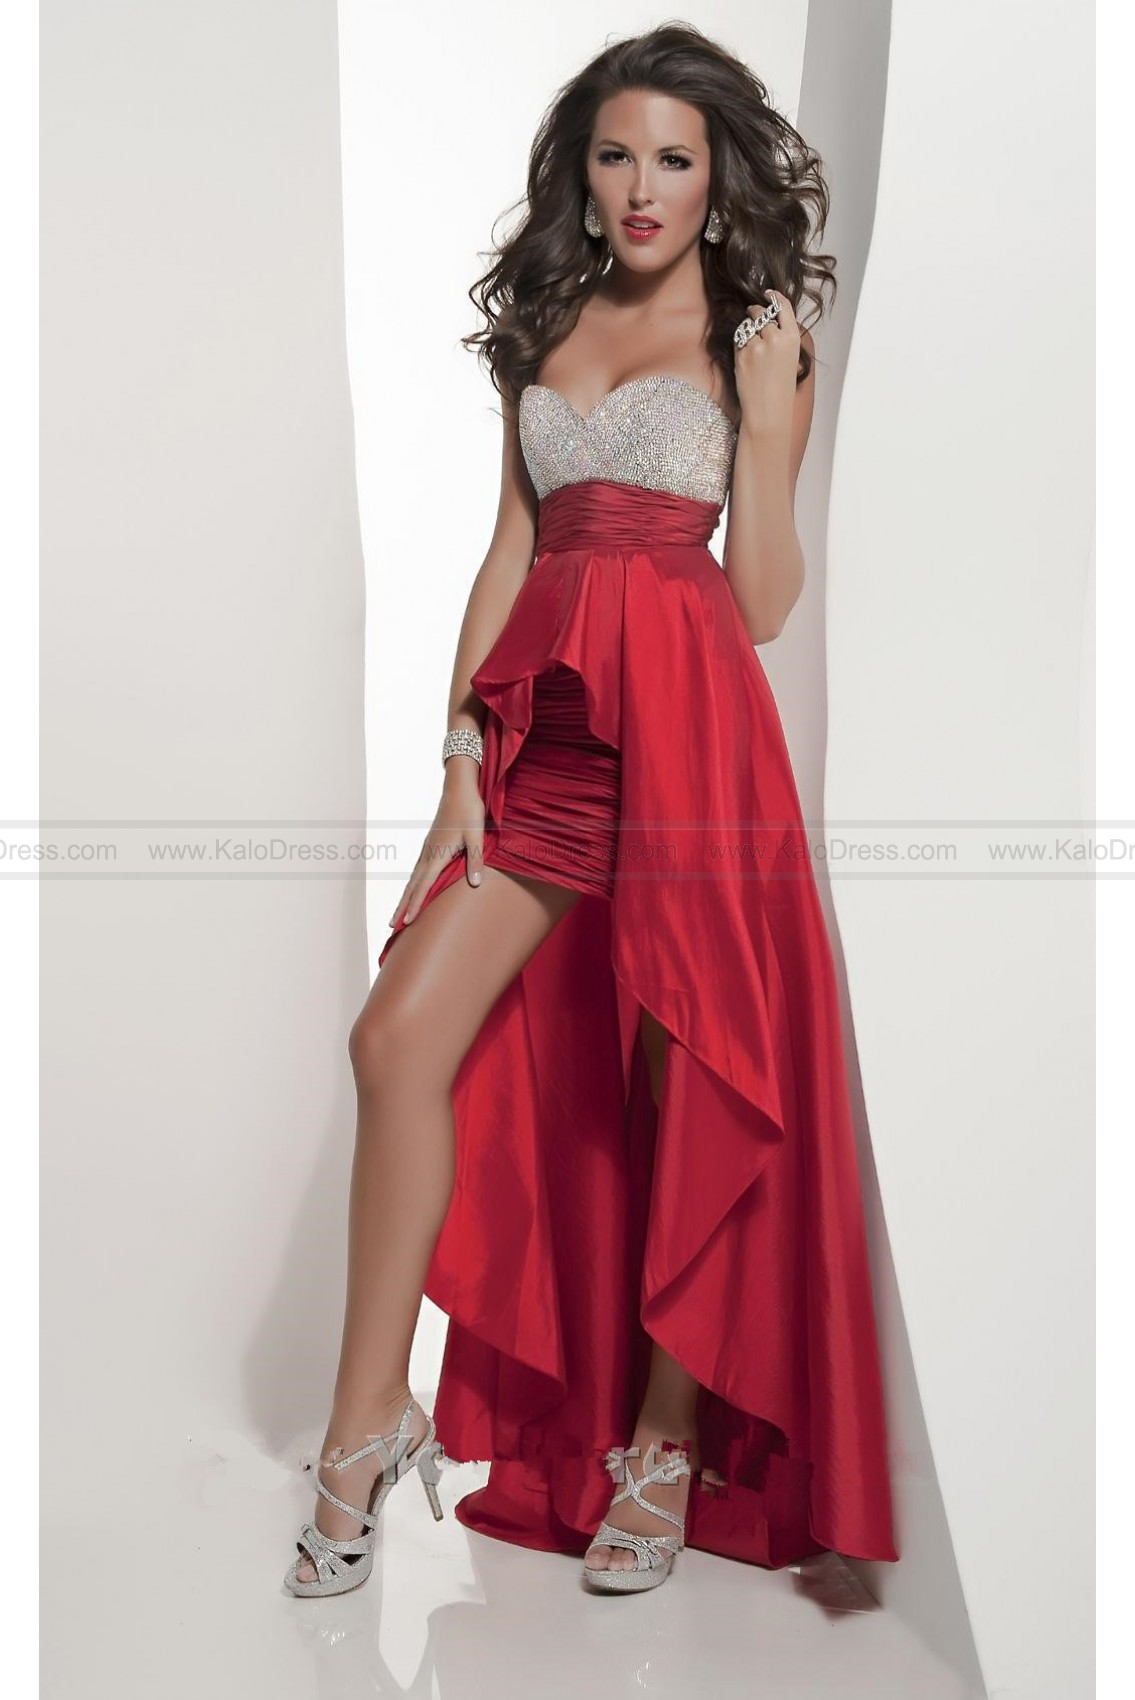 Jasz Couture 4863 - Prom Dresses 2014 - Special Occasion